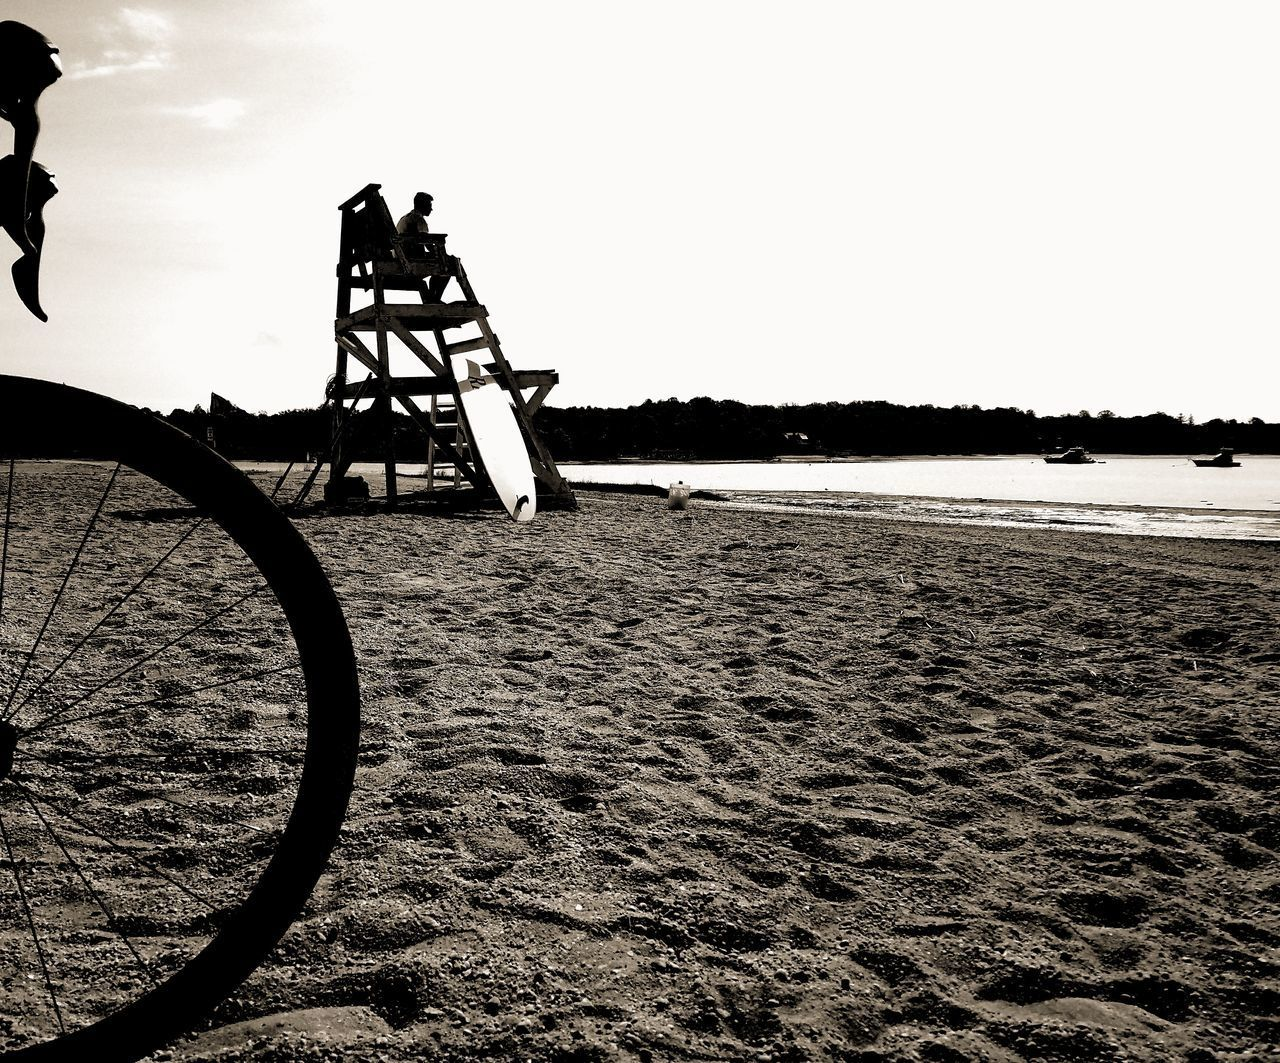 Silhouette Outdoors Bike Road Bike Beach Lifeguard Tower Lifeguard  Ocean Black And White Water